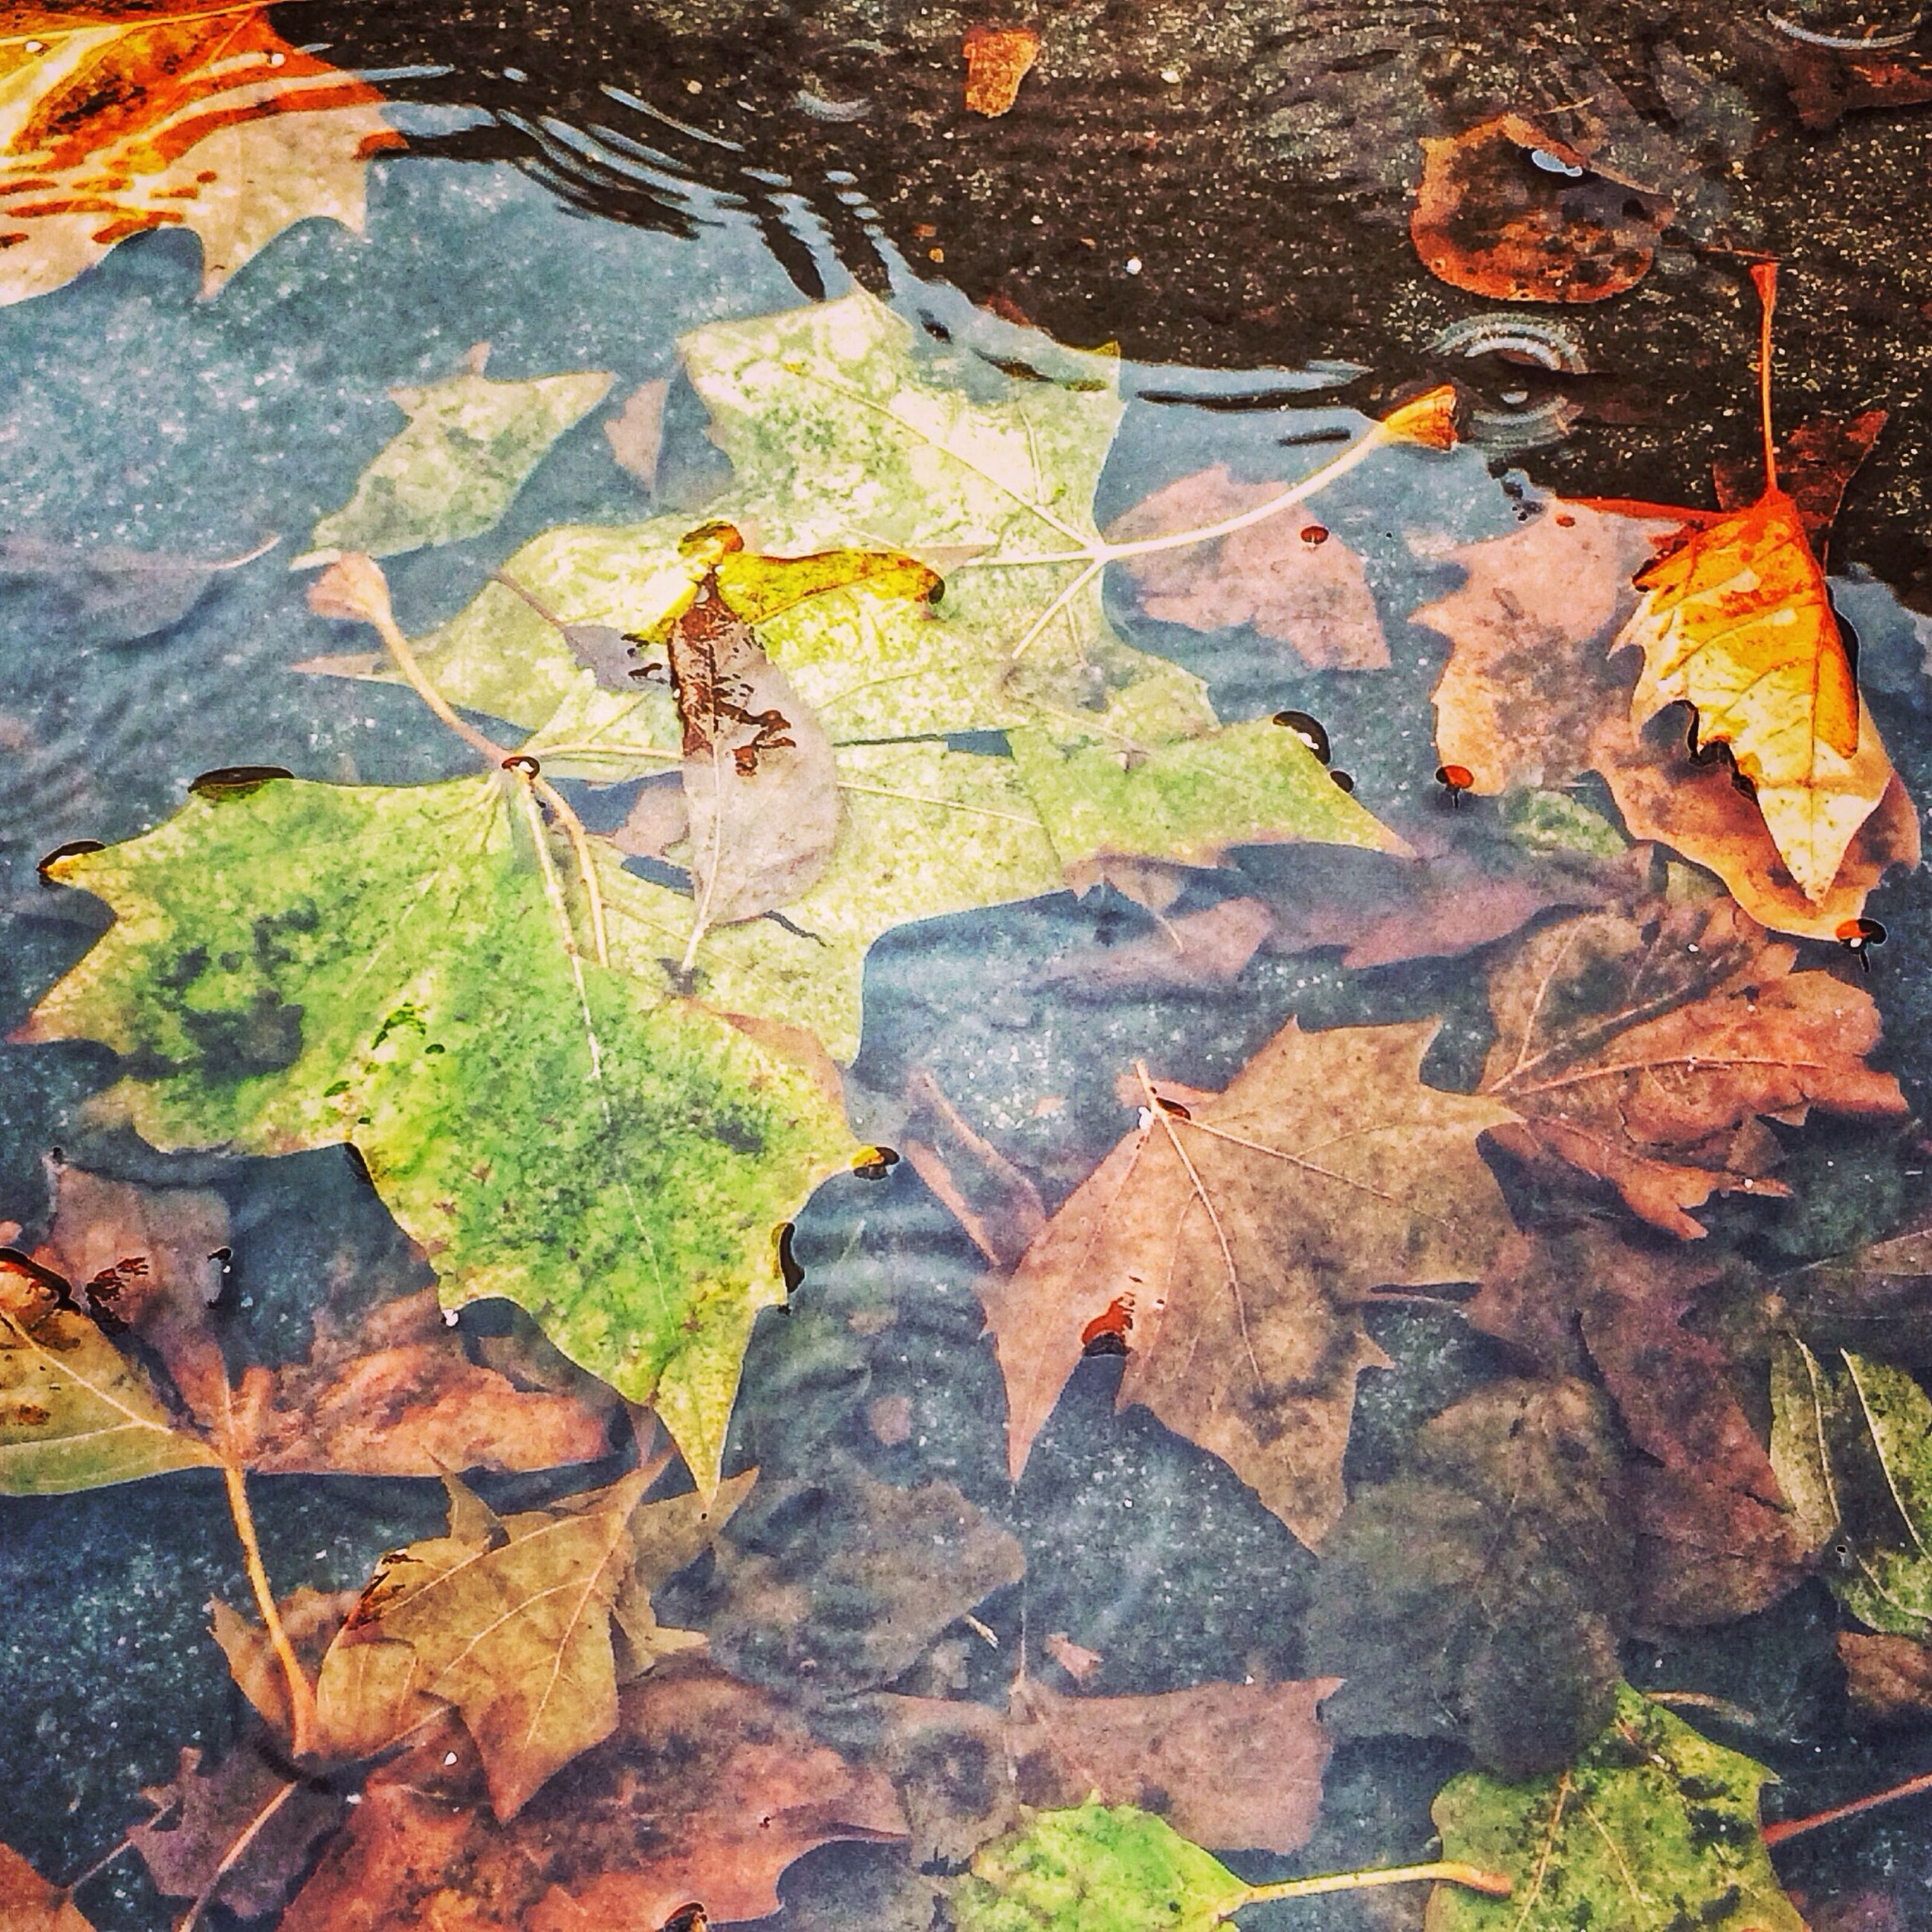 leaf, autumn, leaves, change, season, dry, high angle view, fallen, leaf vein, water, maple leaf, nature, natural pattern, reflection, wet, outdoors, floating on water, full frame, close-up, day